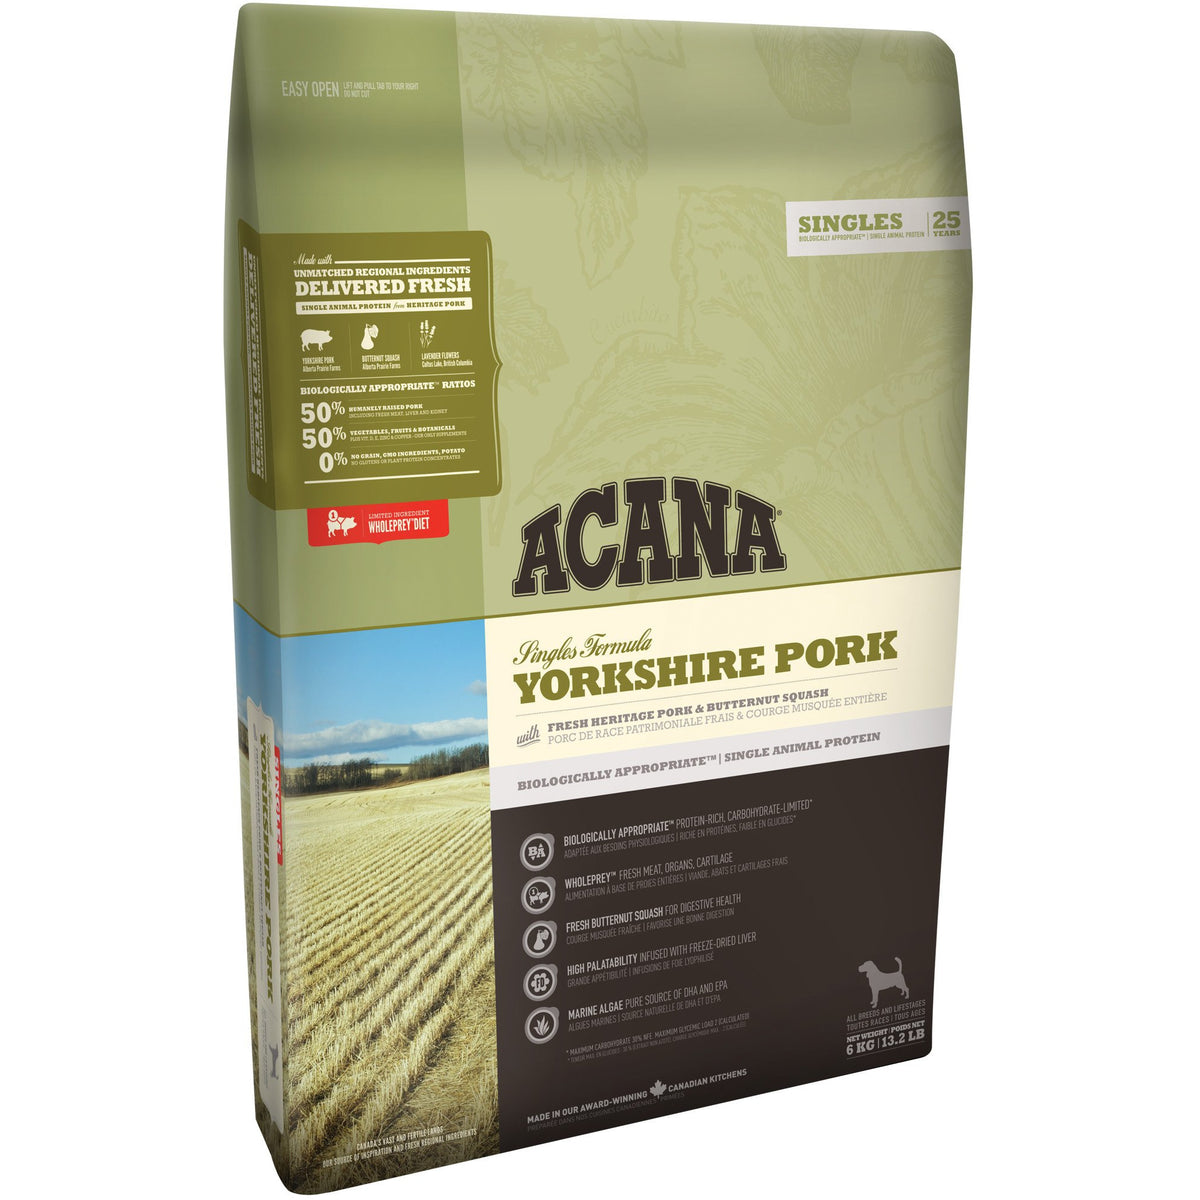 Acana Yorkshire Pork Dog Food (2kg, 6kg, 11.4kg)